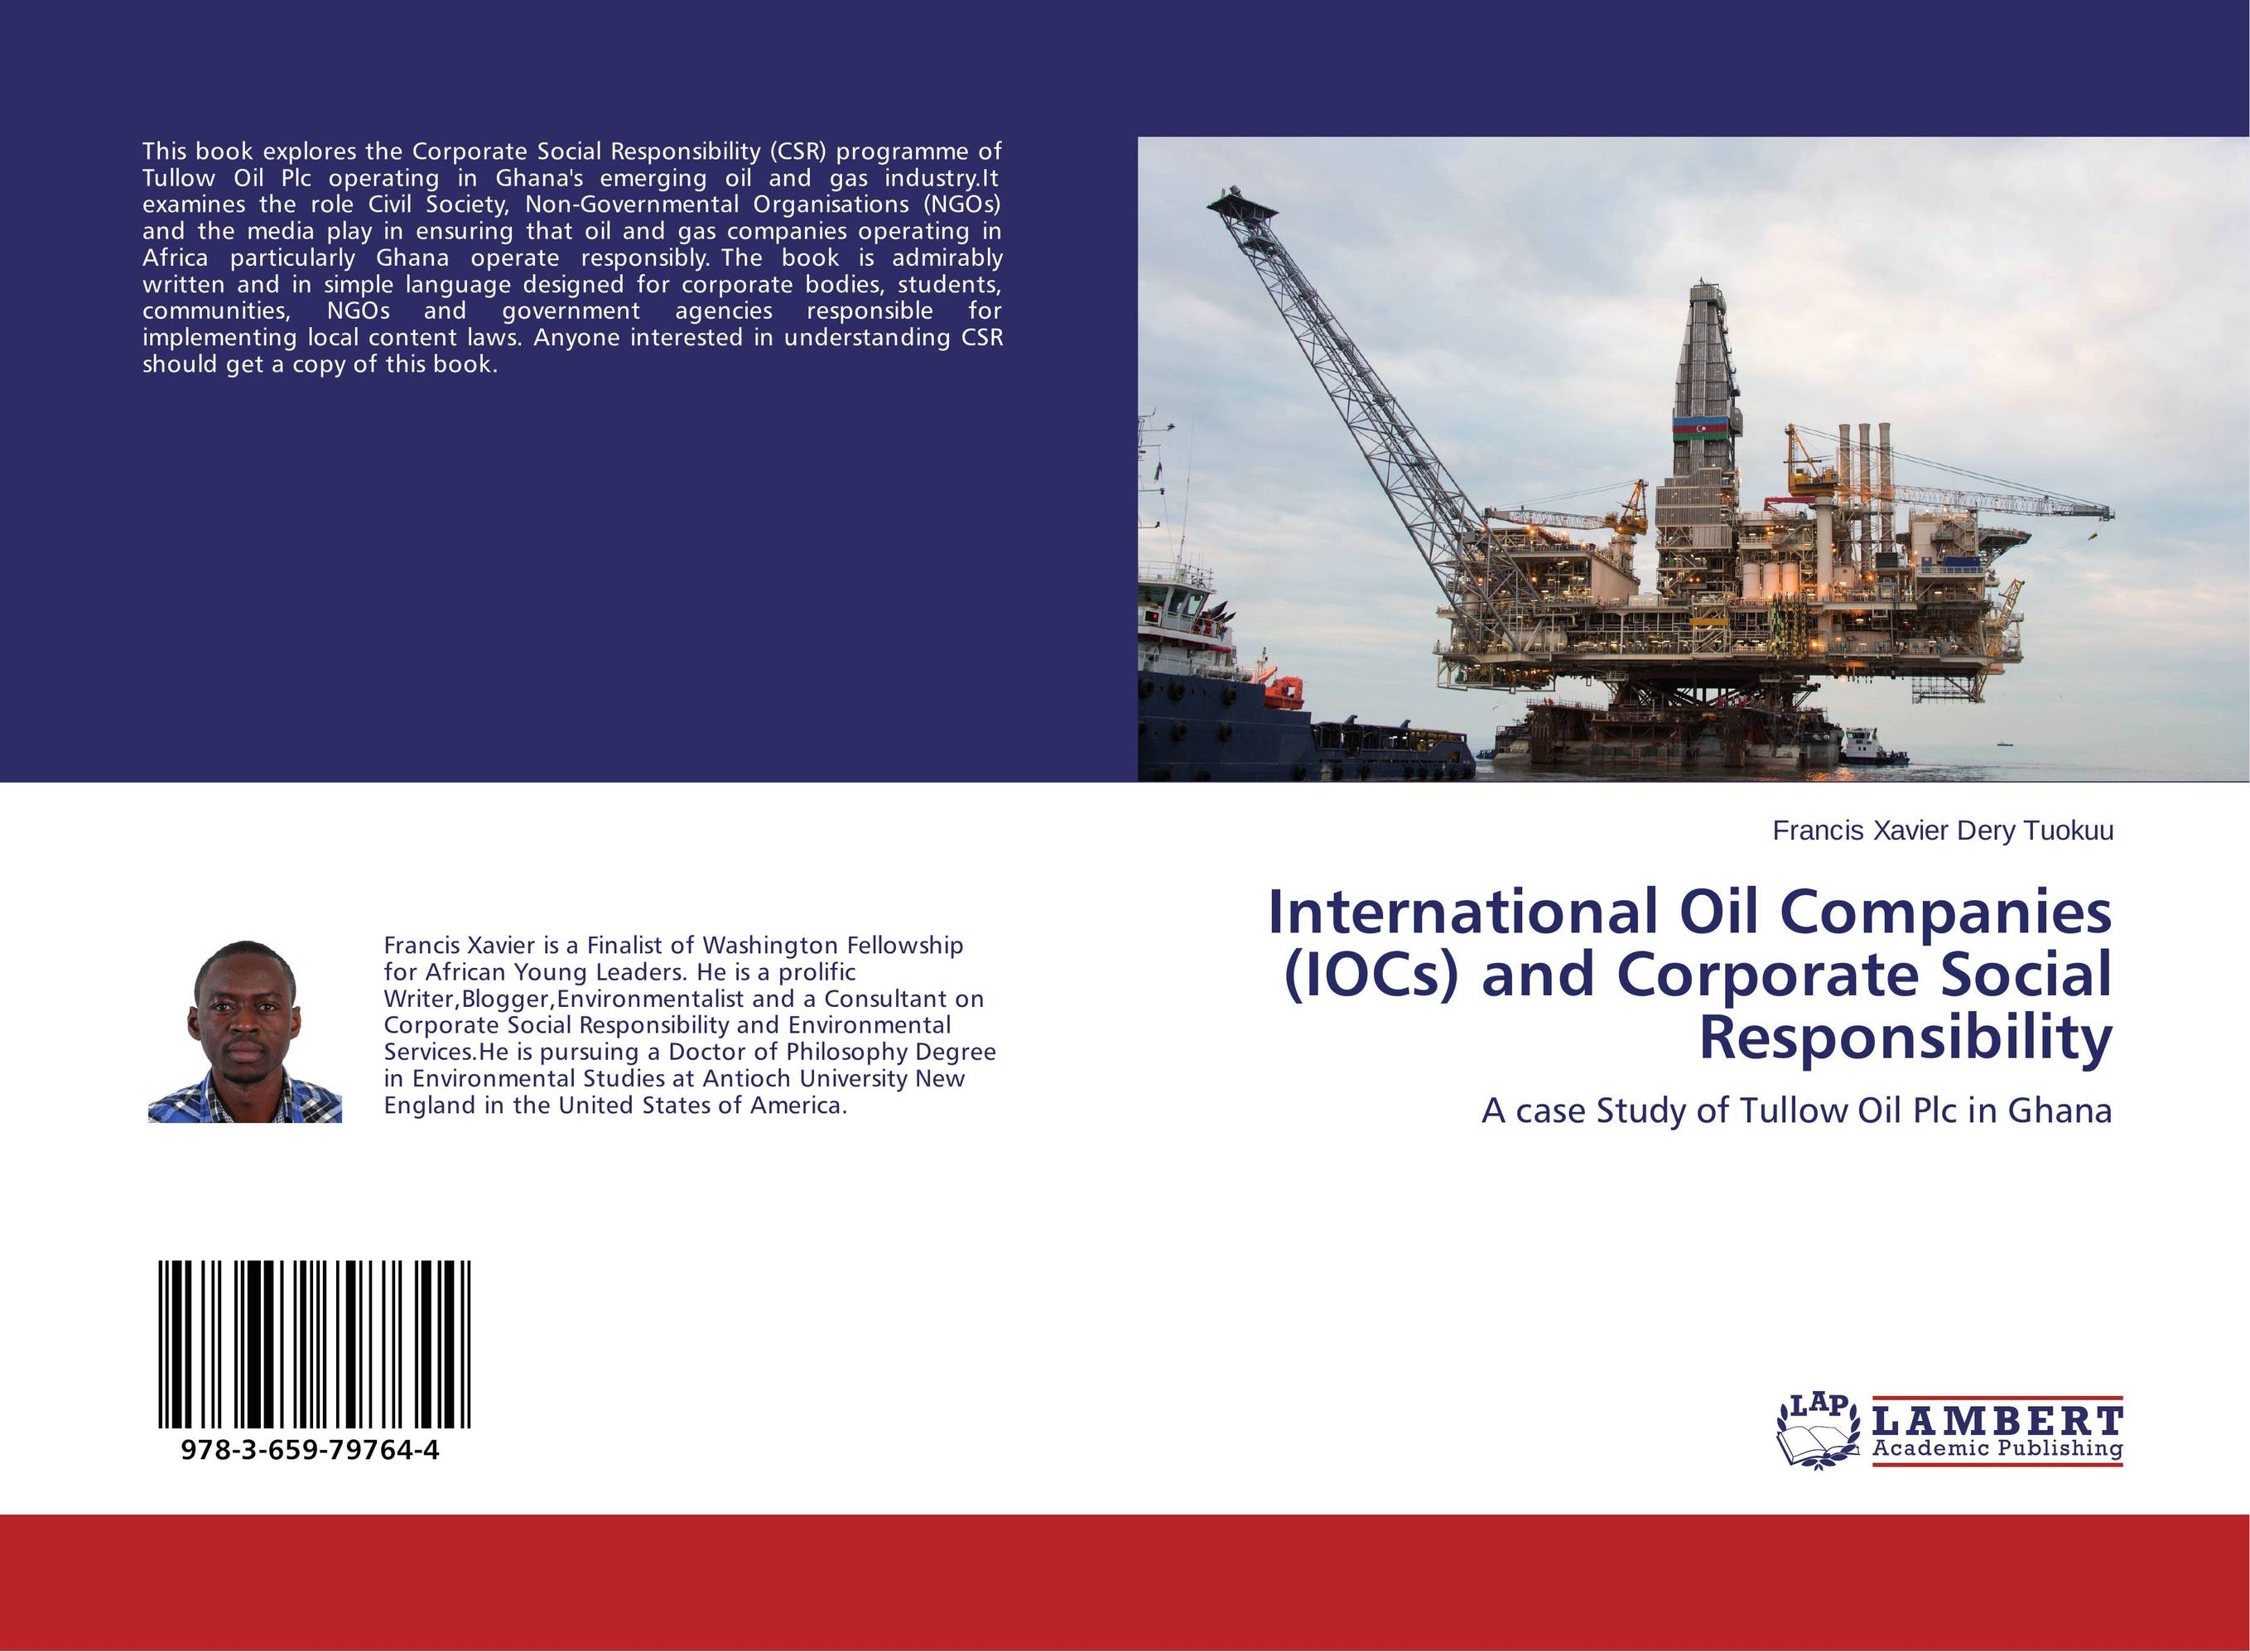 International Oil Companies (IOCs) and Corporate Social Responsibility corporate governance and firm value